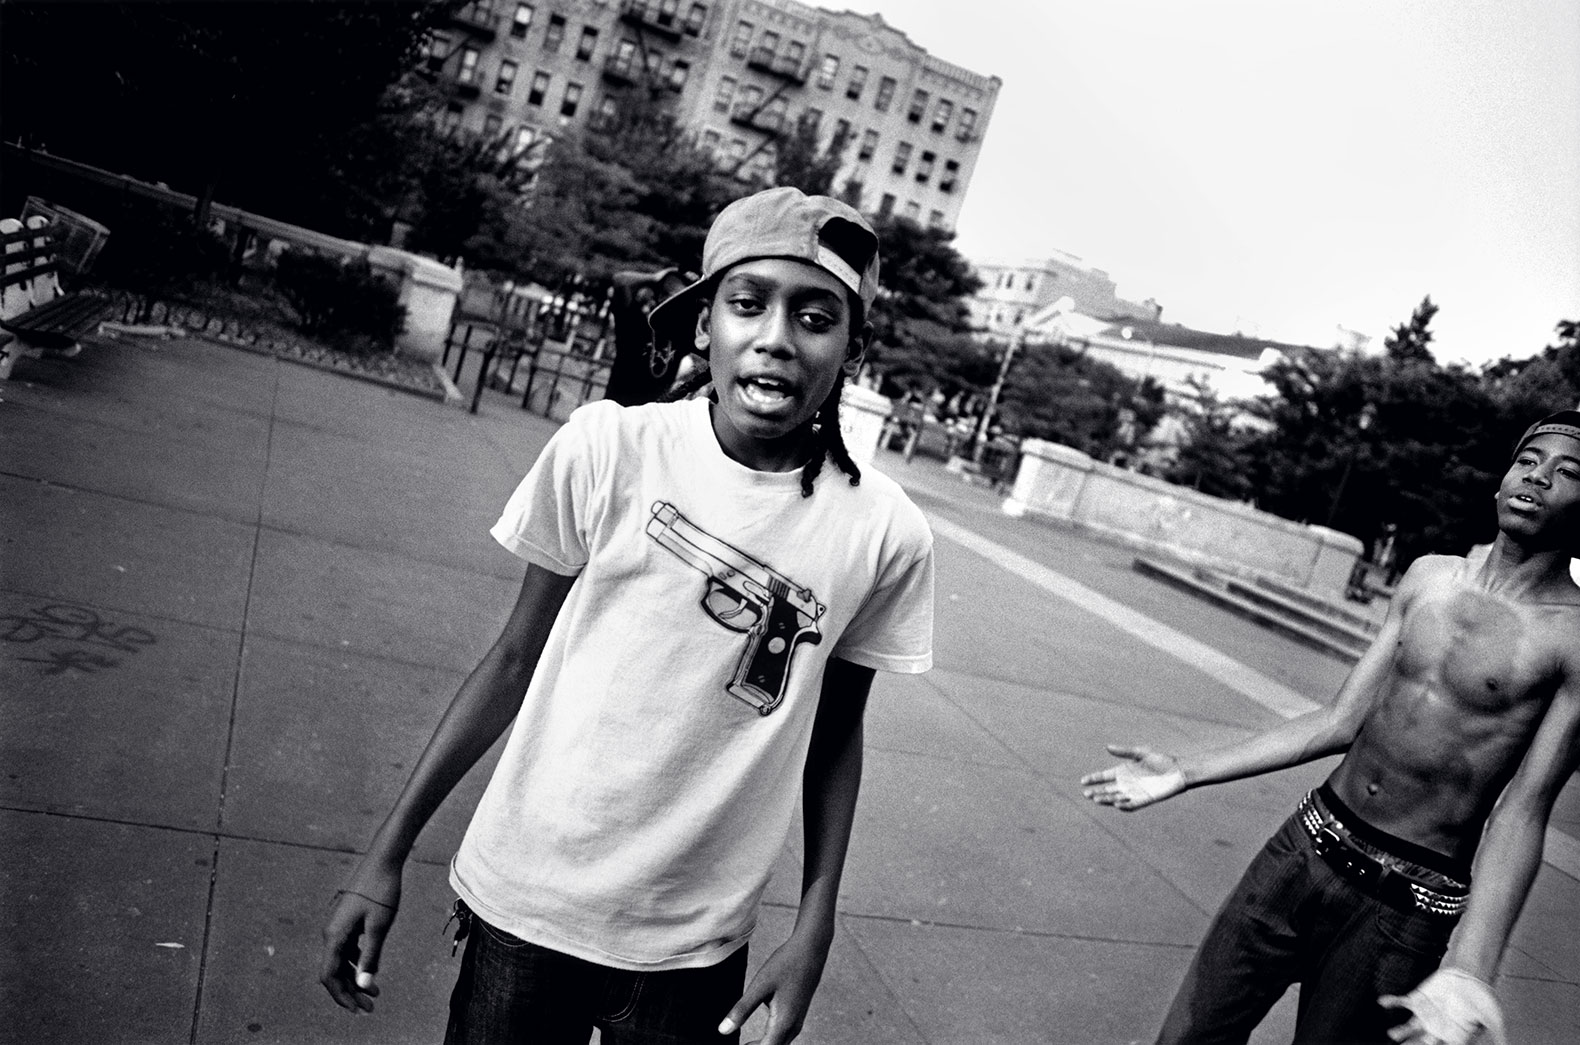 Untitled (Kadeem and Leon #20), 2007